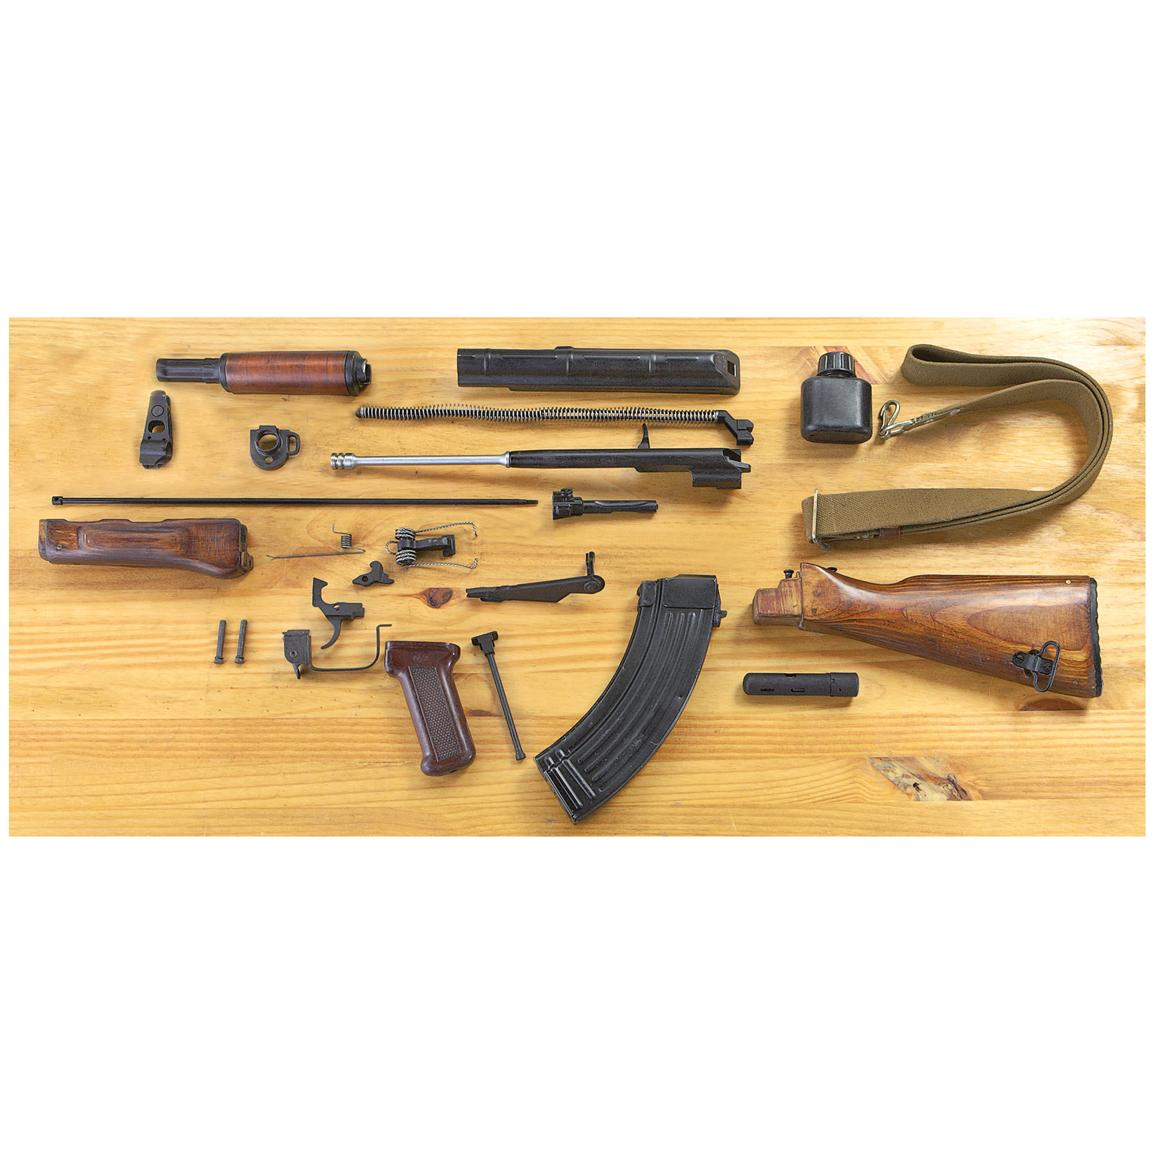 Used Bulgarian AK-47 Replacement Parts Kit